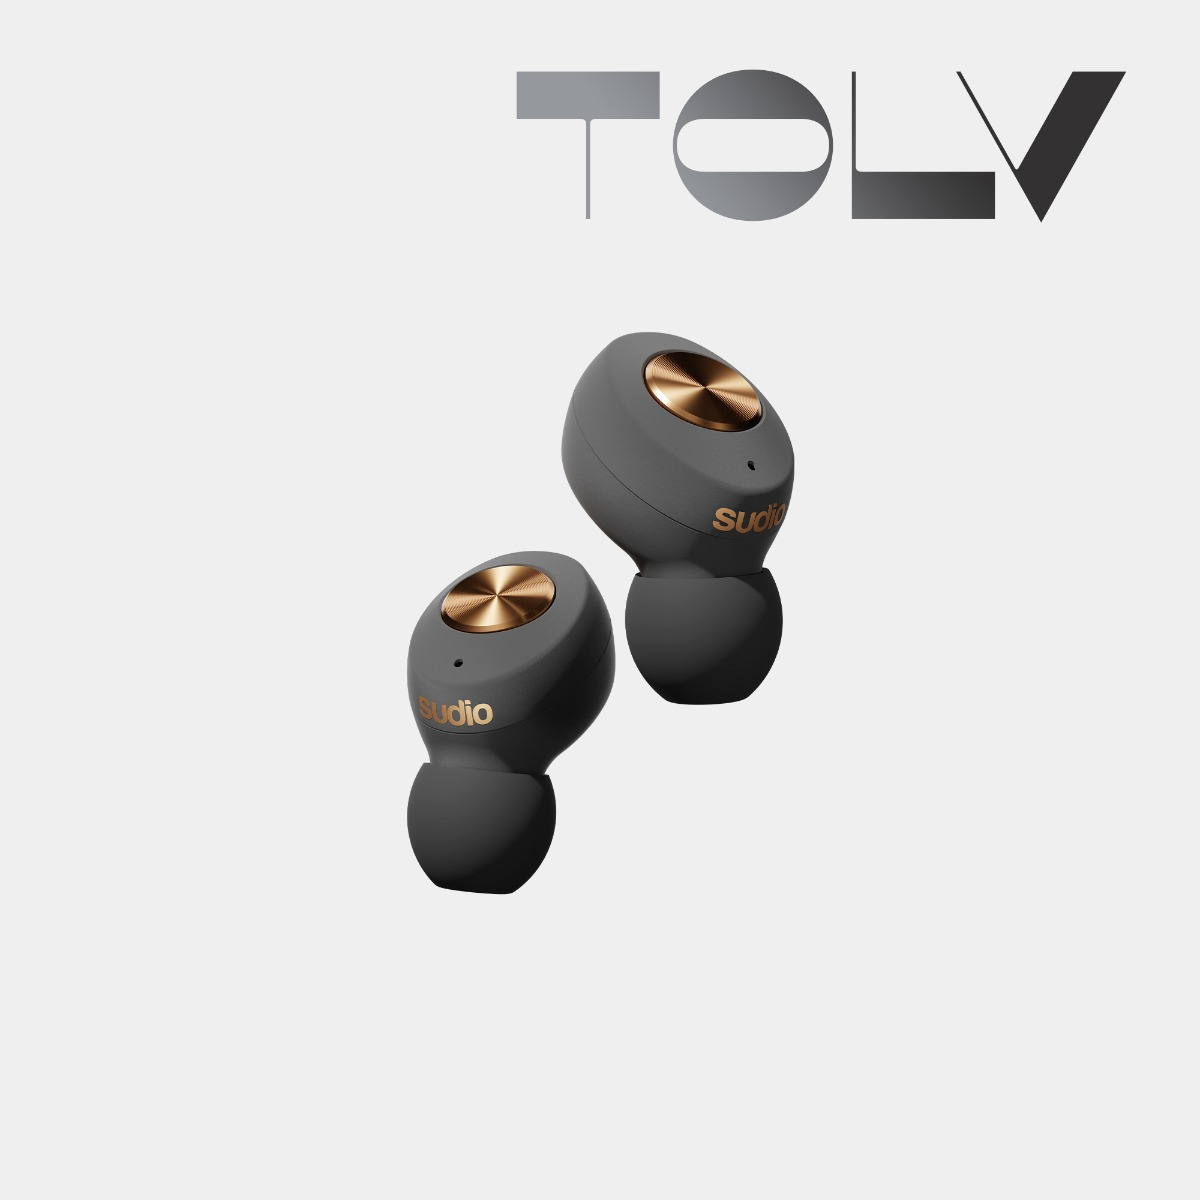 Sudio Tolv earbuds earphones wireless graphene driver